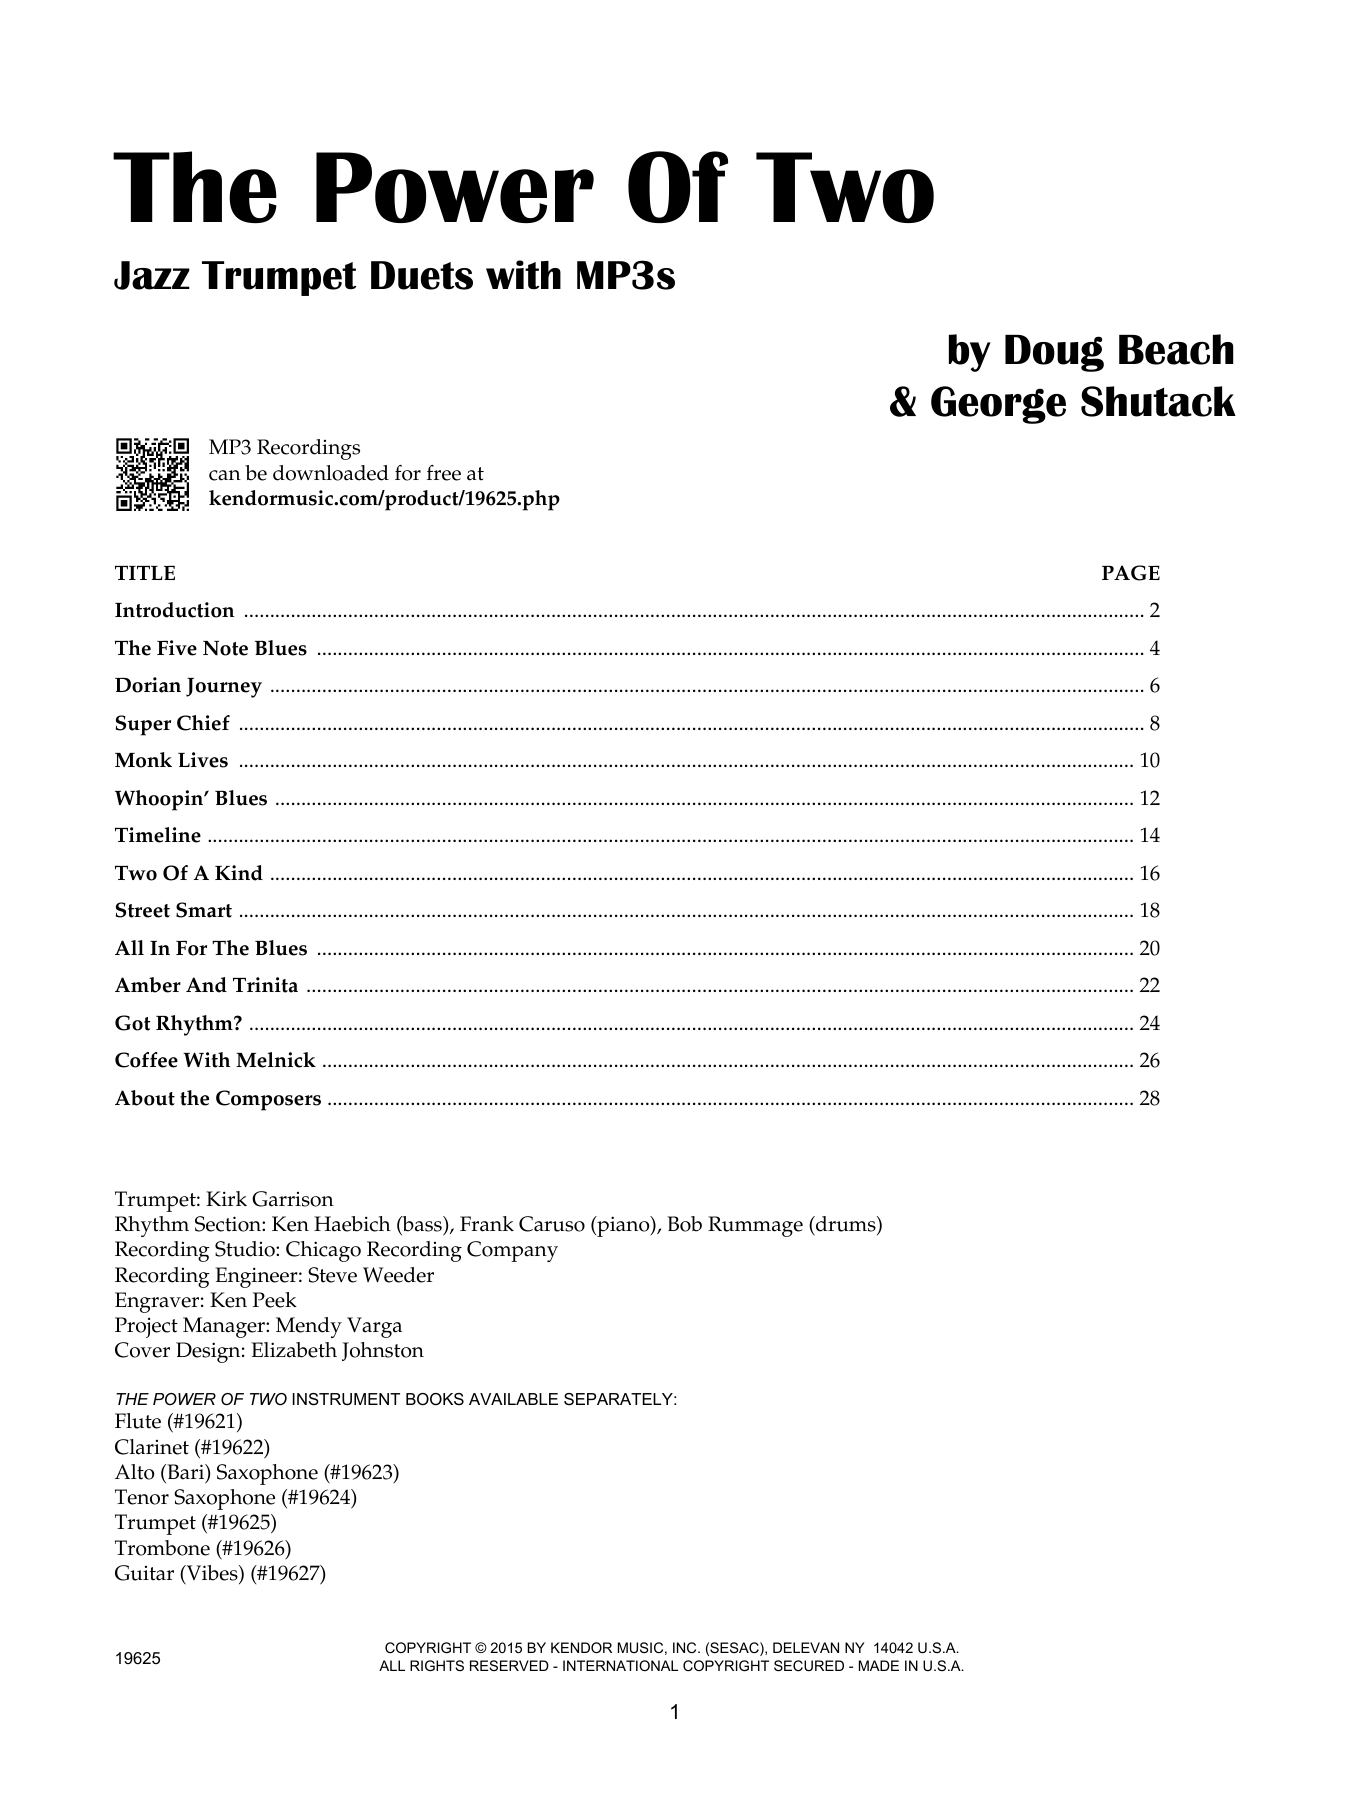 Doug Beach The Power Of Two - Trumpet sheet music notes and chords. Download Printable PDF.